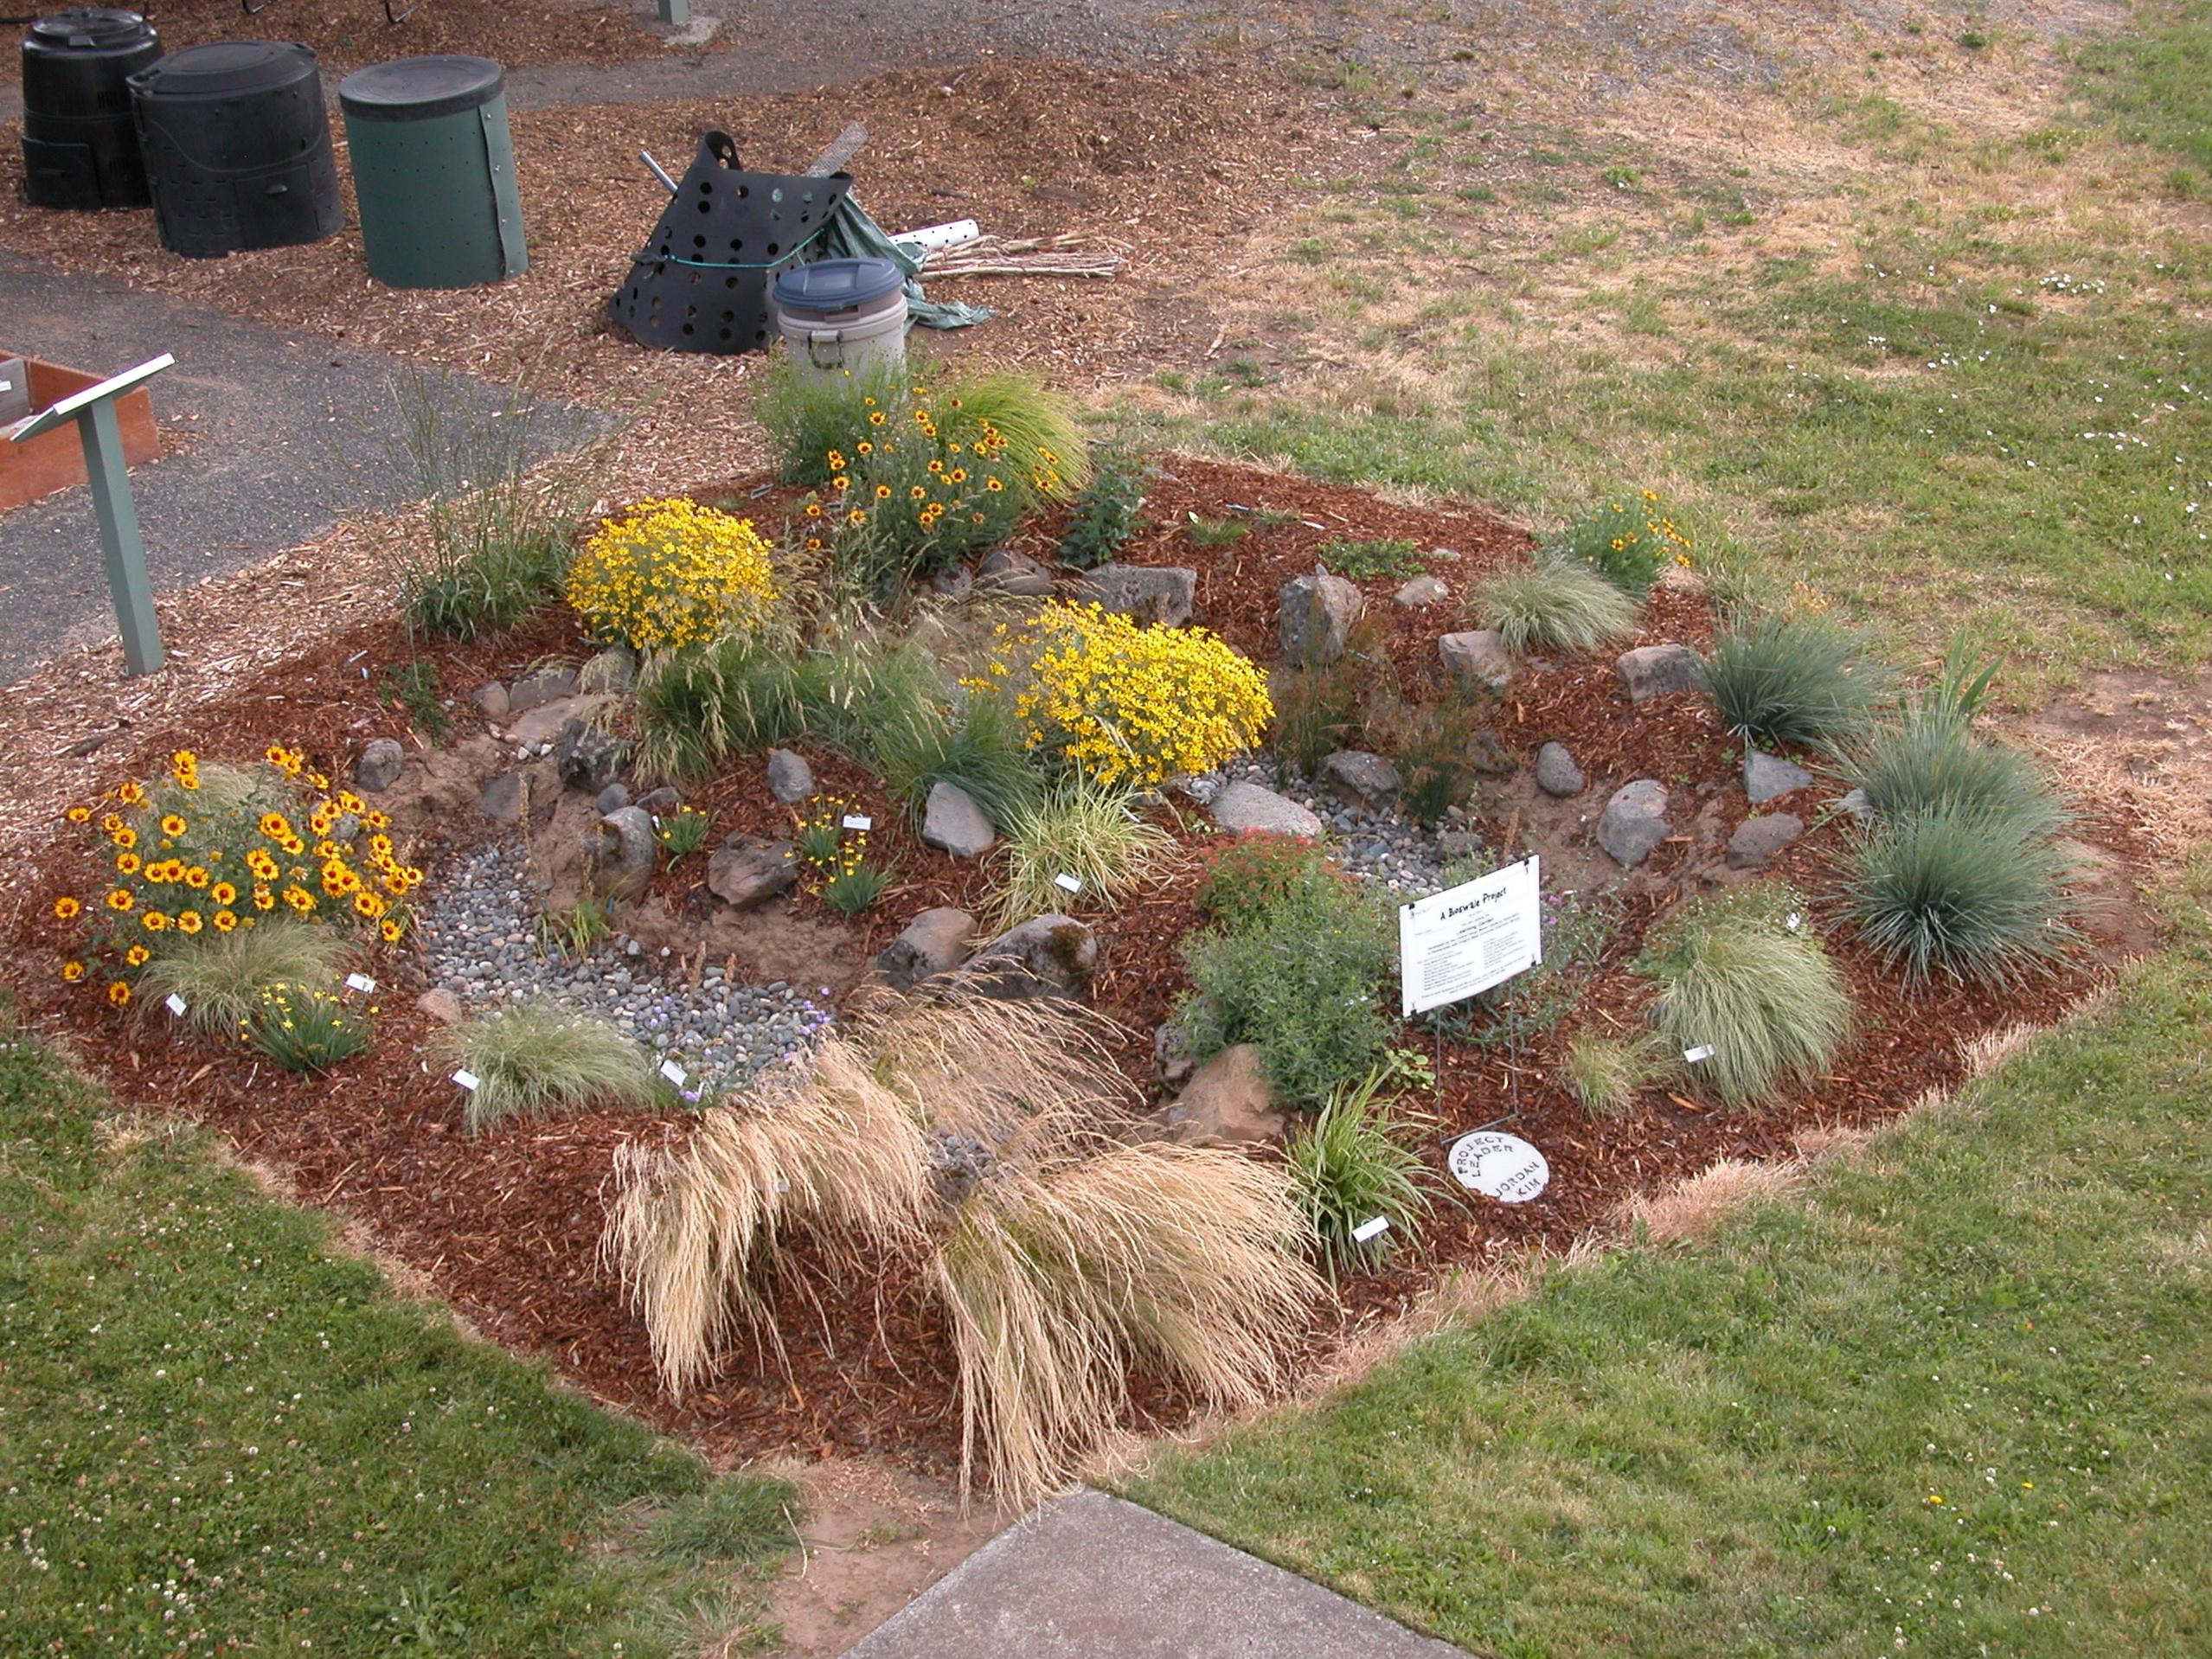 OSU Open Garden: Landscaping with Less Water on July 11th | Hood ...